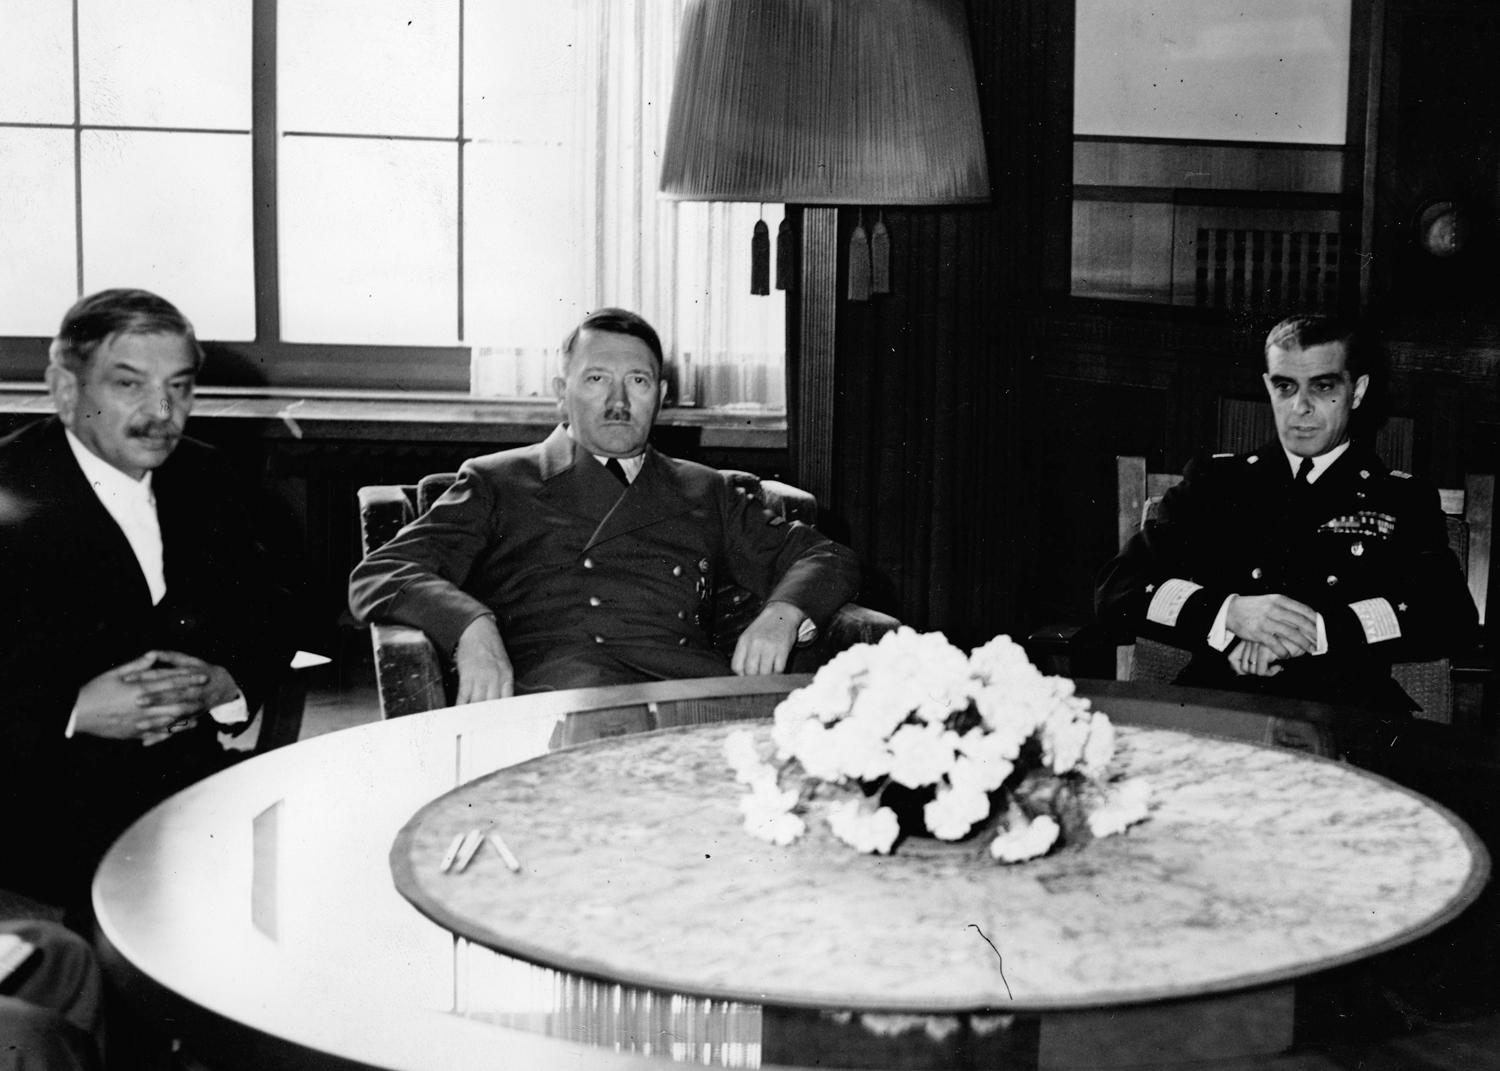 Adolf Hitler at the Berghof with French Prime Minister Pierre Laval and Italian undersecretary of state Giuseppe Bastianini